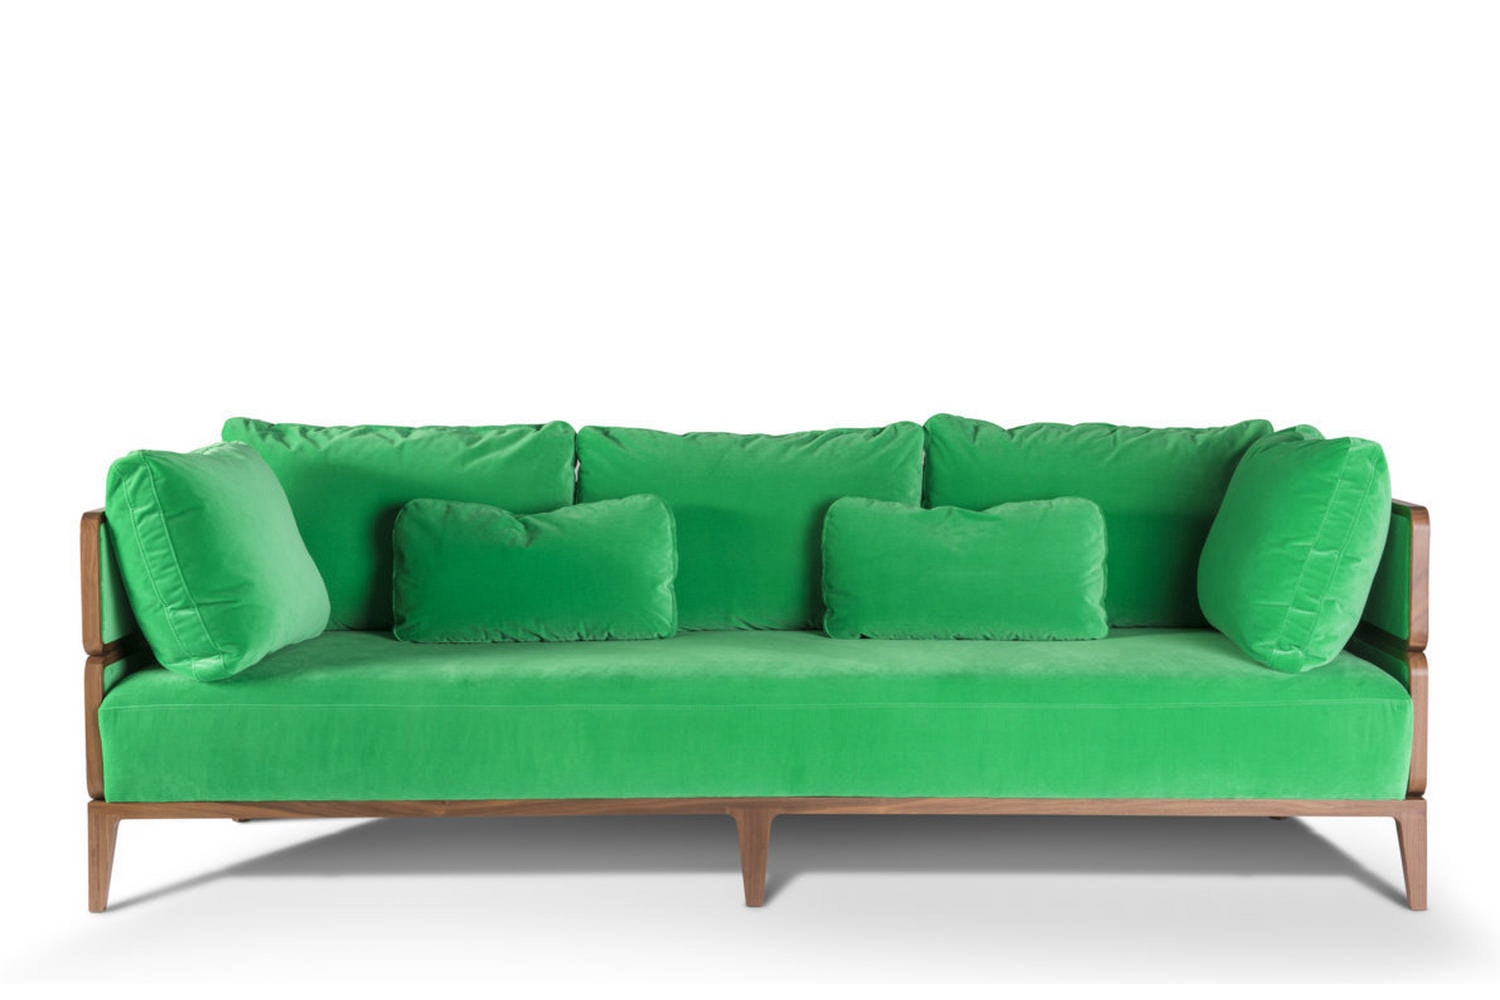 Promenade Sofa by Philippe Nigro for Gebruder Thonet Vienna GmbH